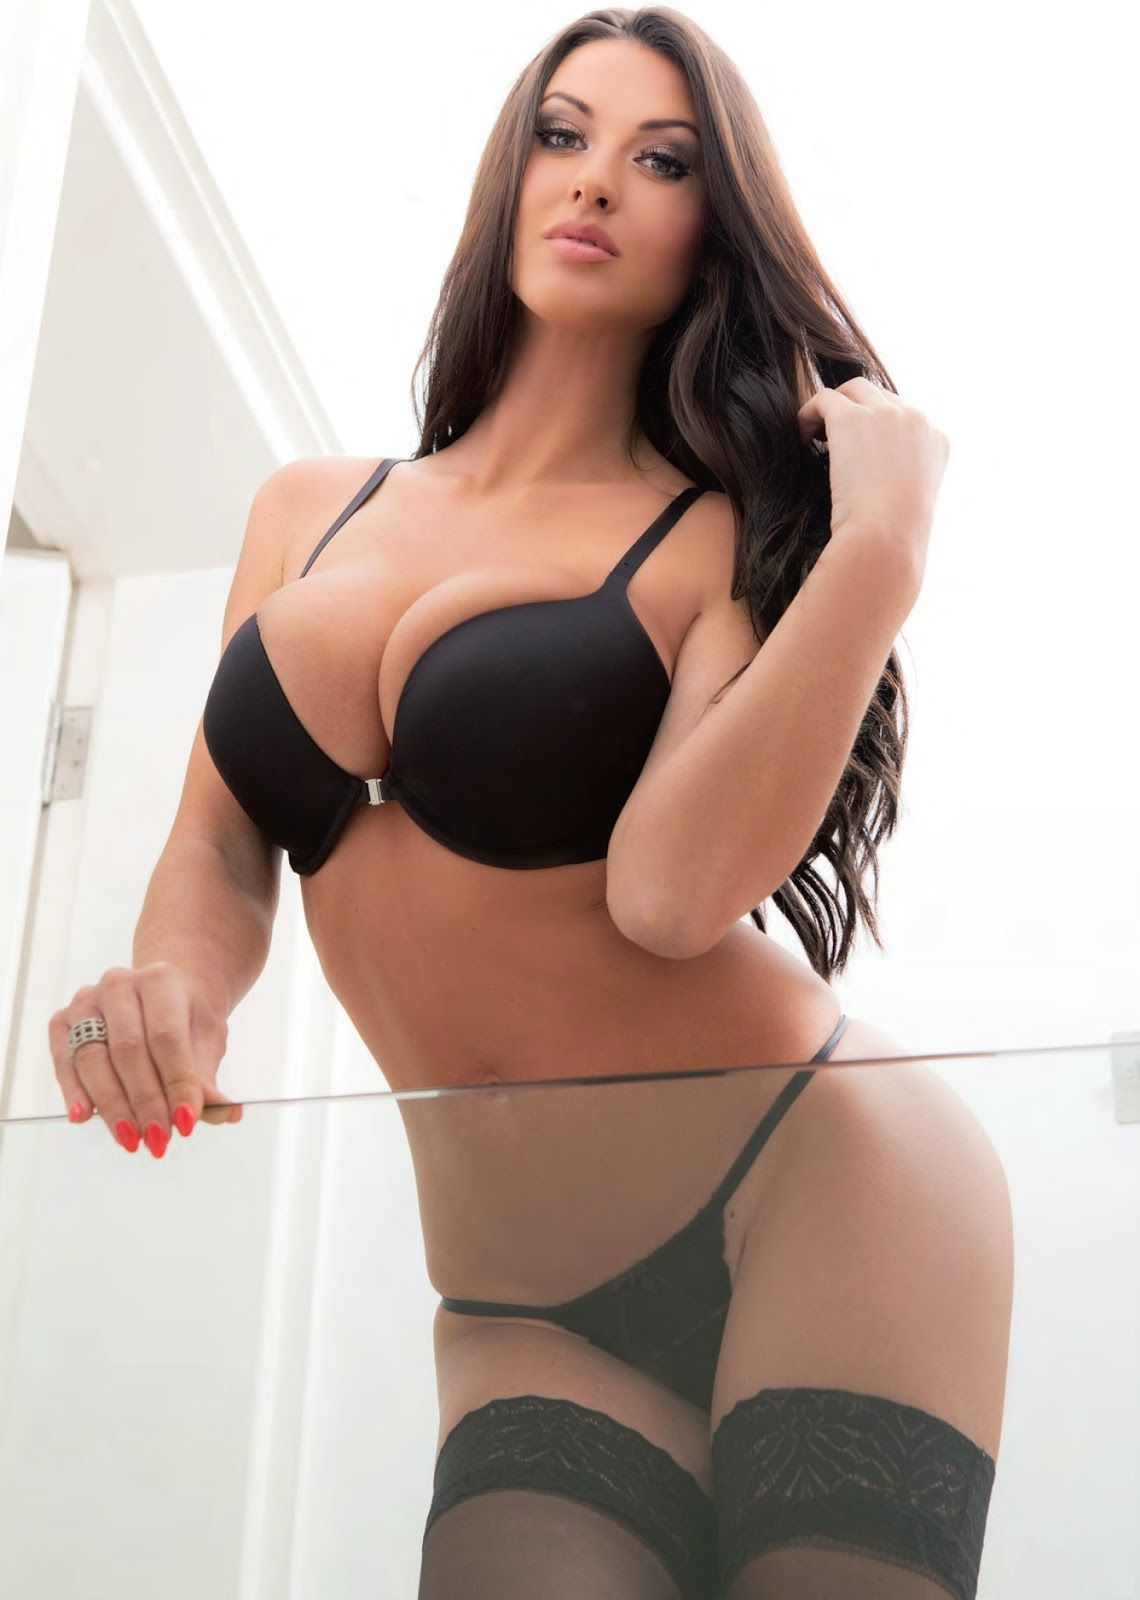 alice goodwin | g | pinterest | alice goodwin, alice and brunettes